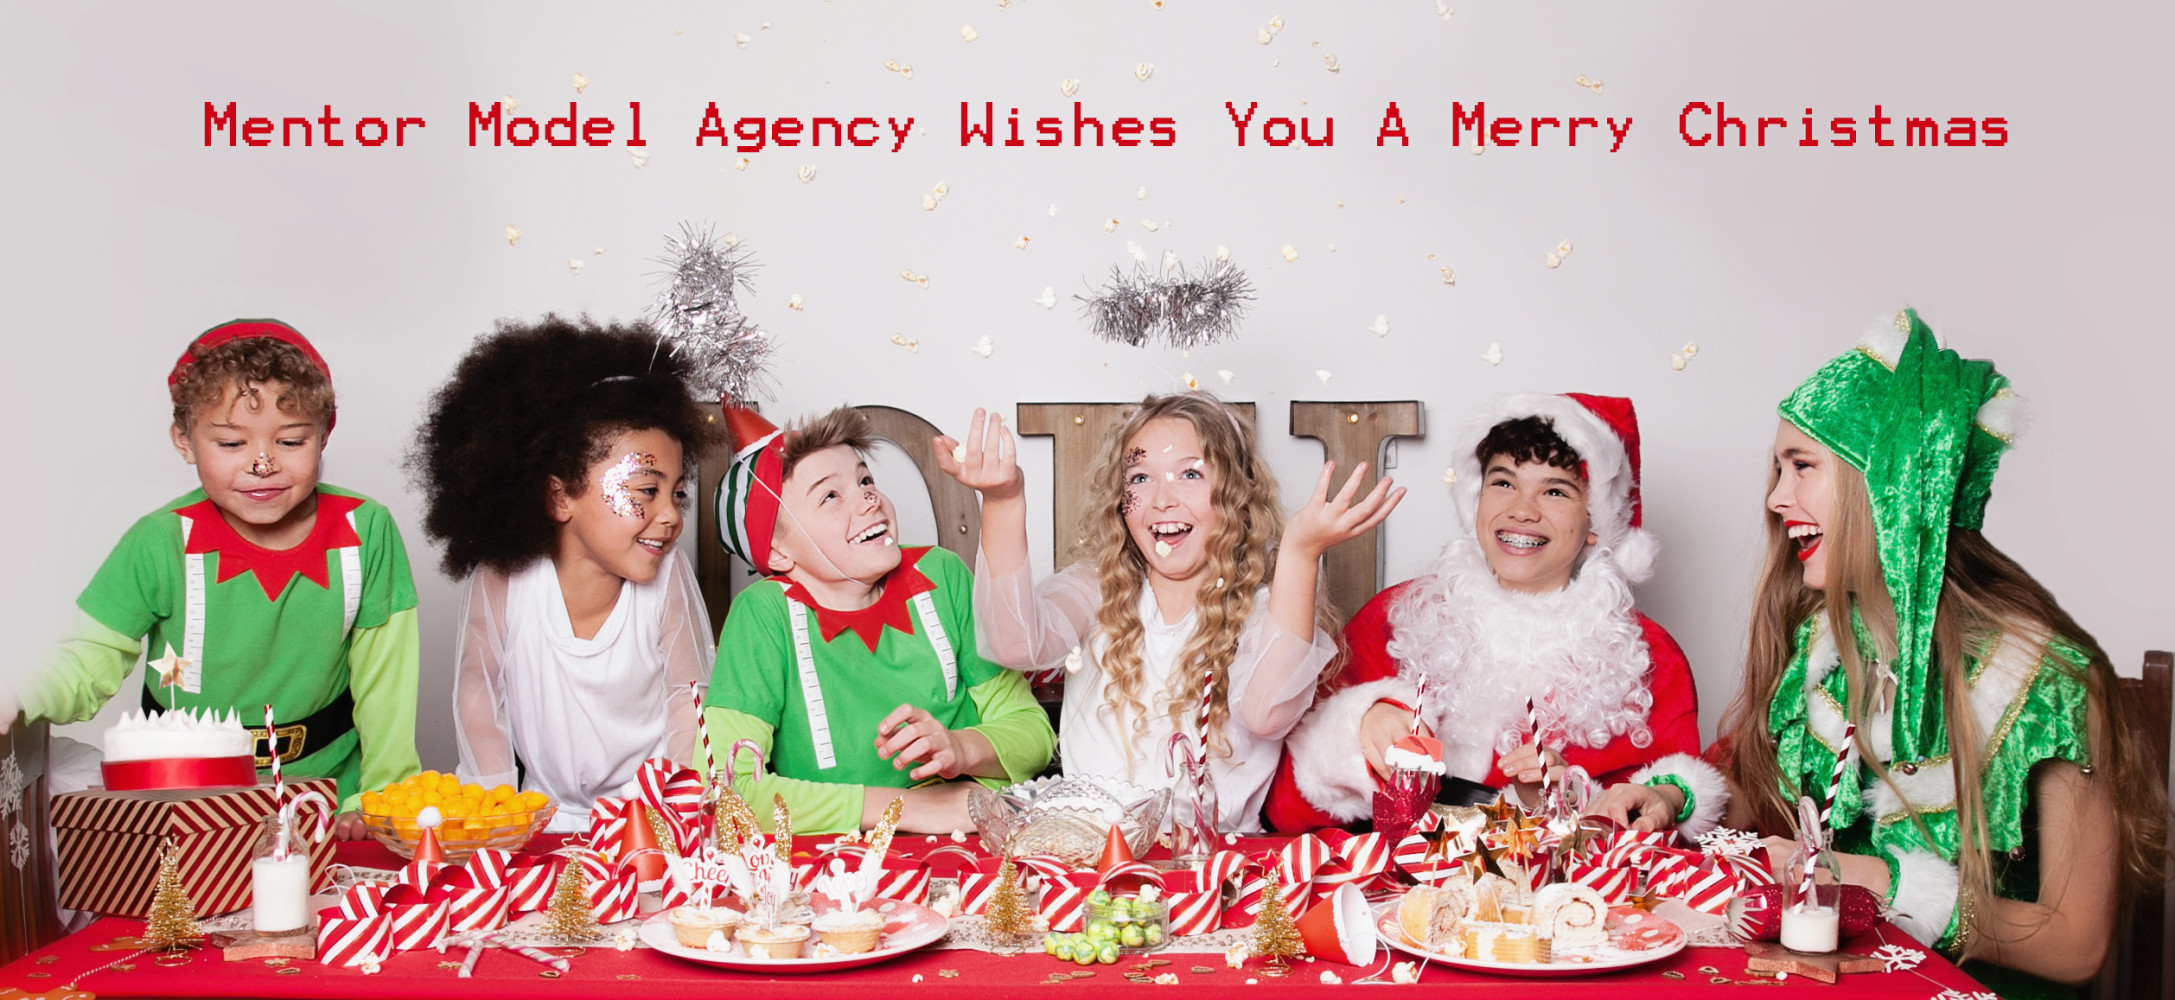 Mentor Model Agency's 2017 Christmas Card is here!